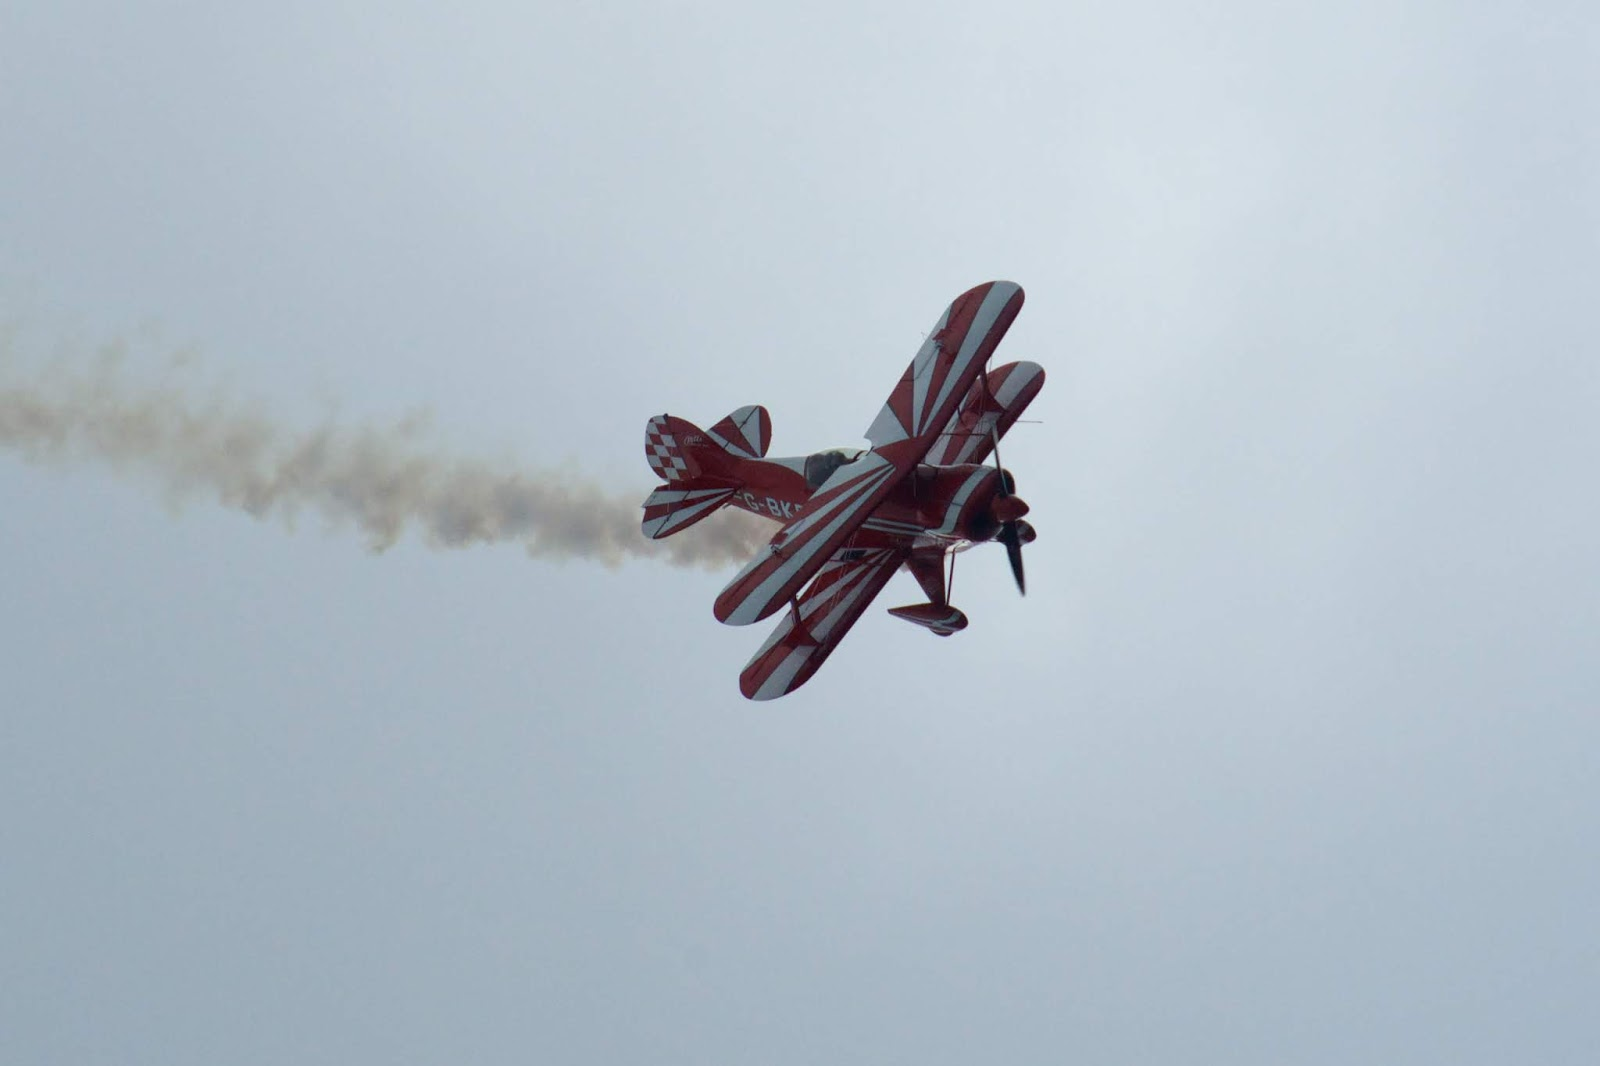 Ayrshire Scotland Business News: Airshow wows the crowds